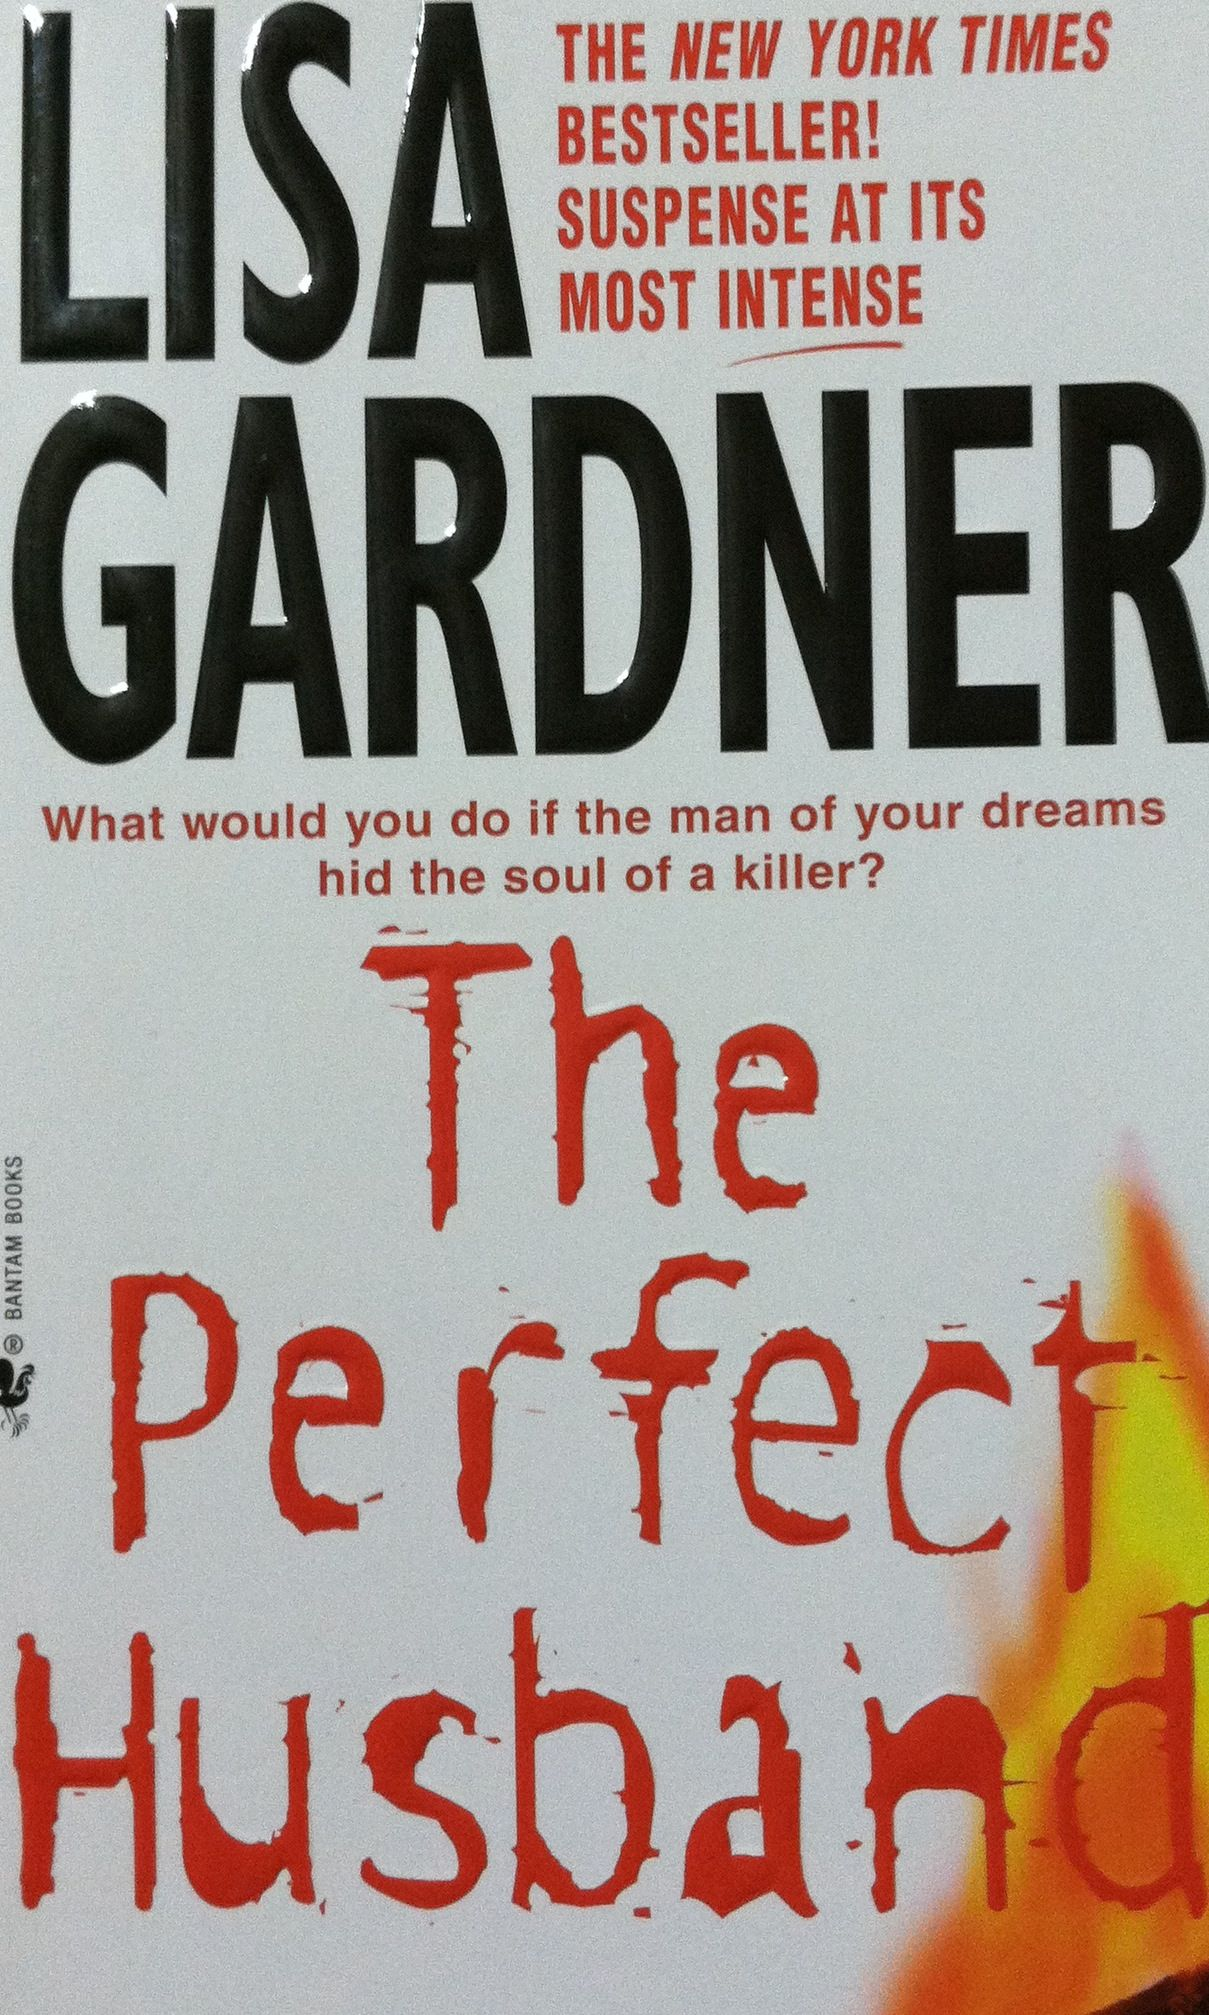 Any Lisa Gardner Book Is A Good Read!